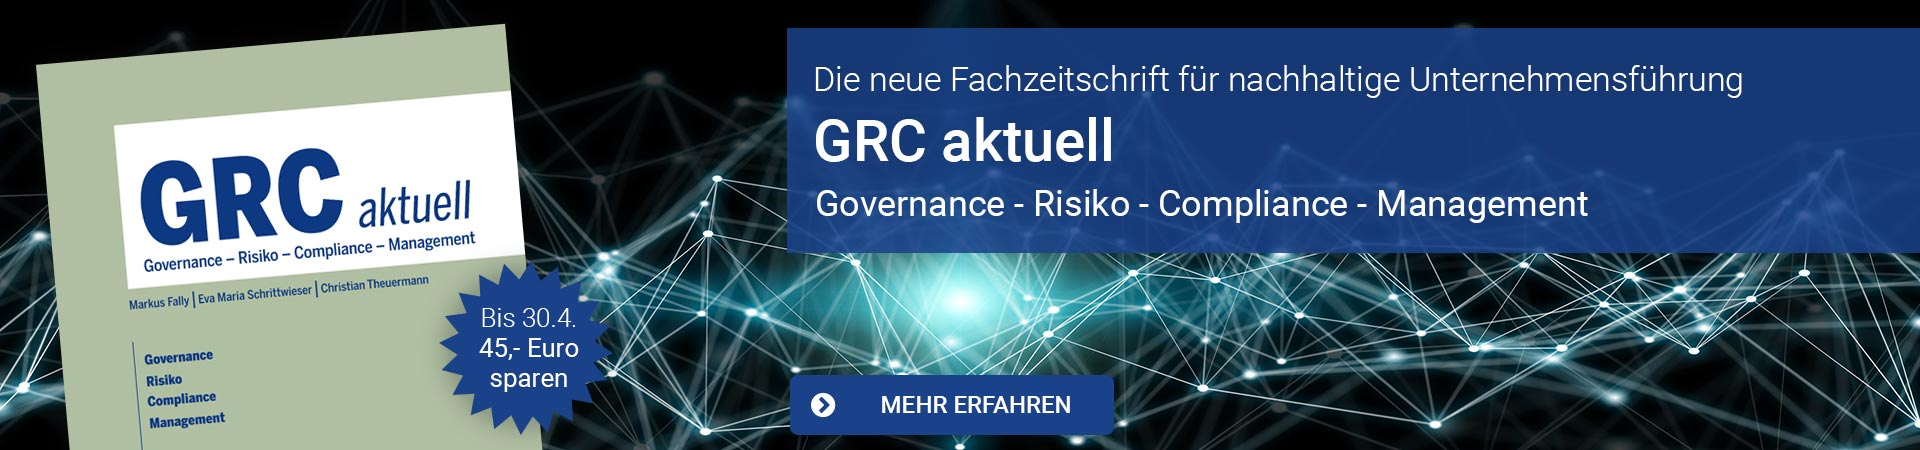 GRC aktuell - Governance - Risiko - Compliance - Management